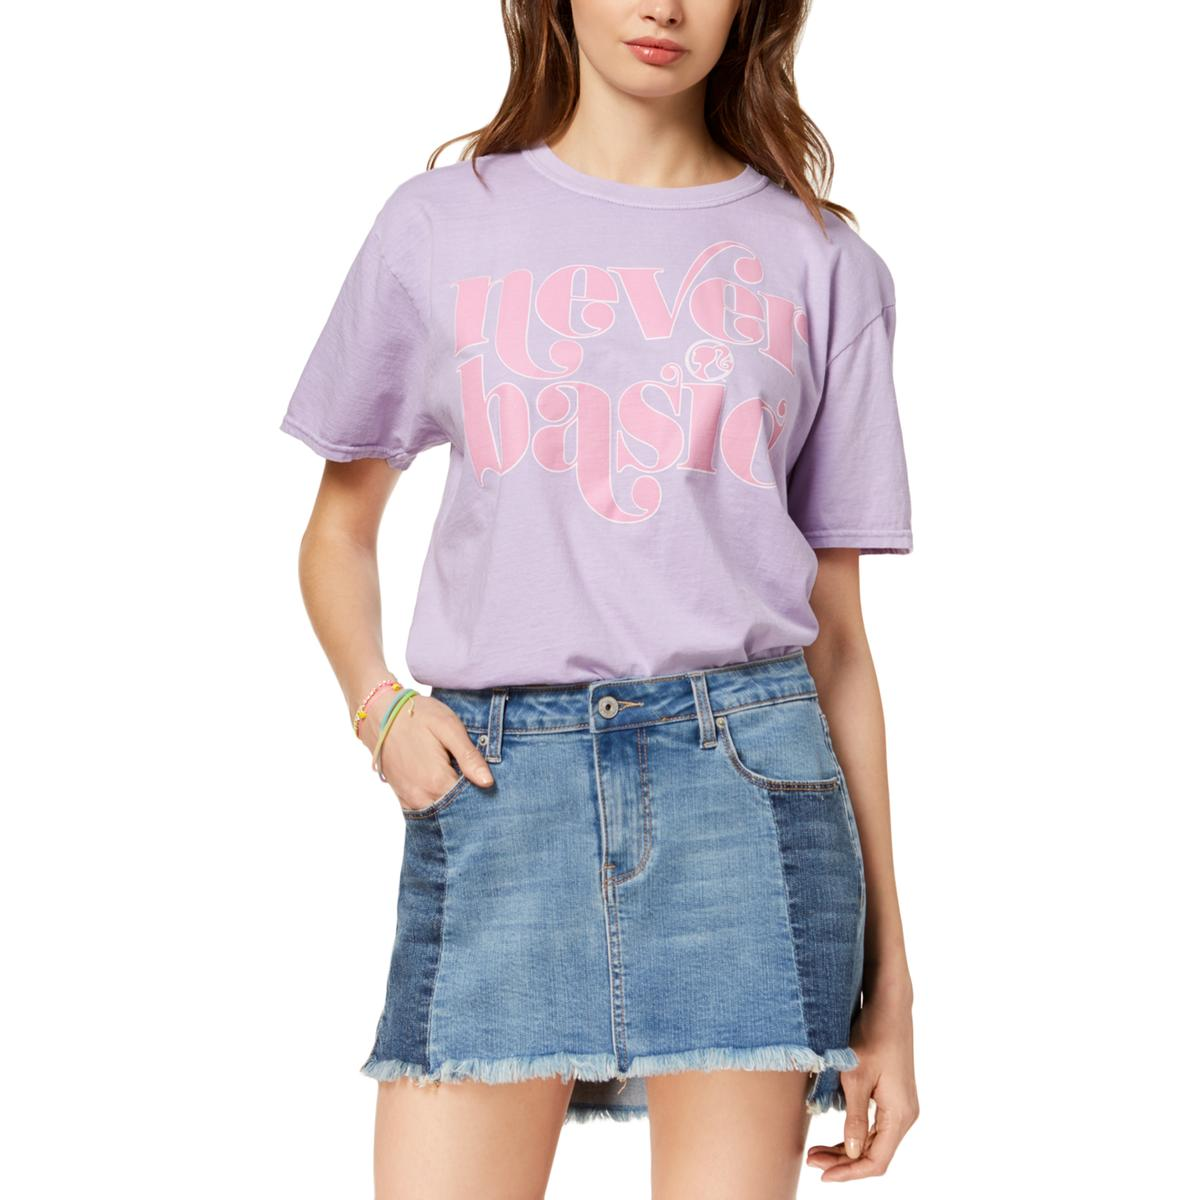 30baf756 Details about Barbie Womens Never Basic Cropped Graphic T-Shirt Top Juniors  BHFO 5051